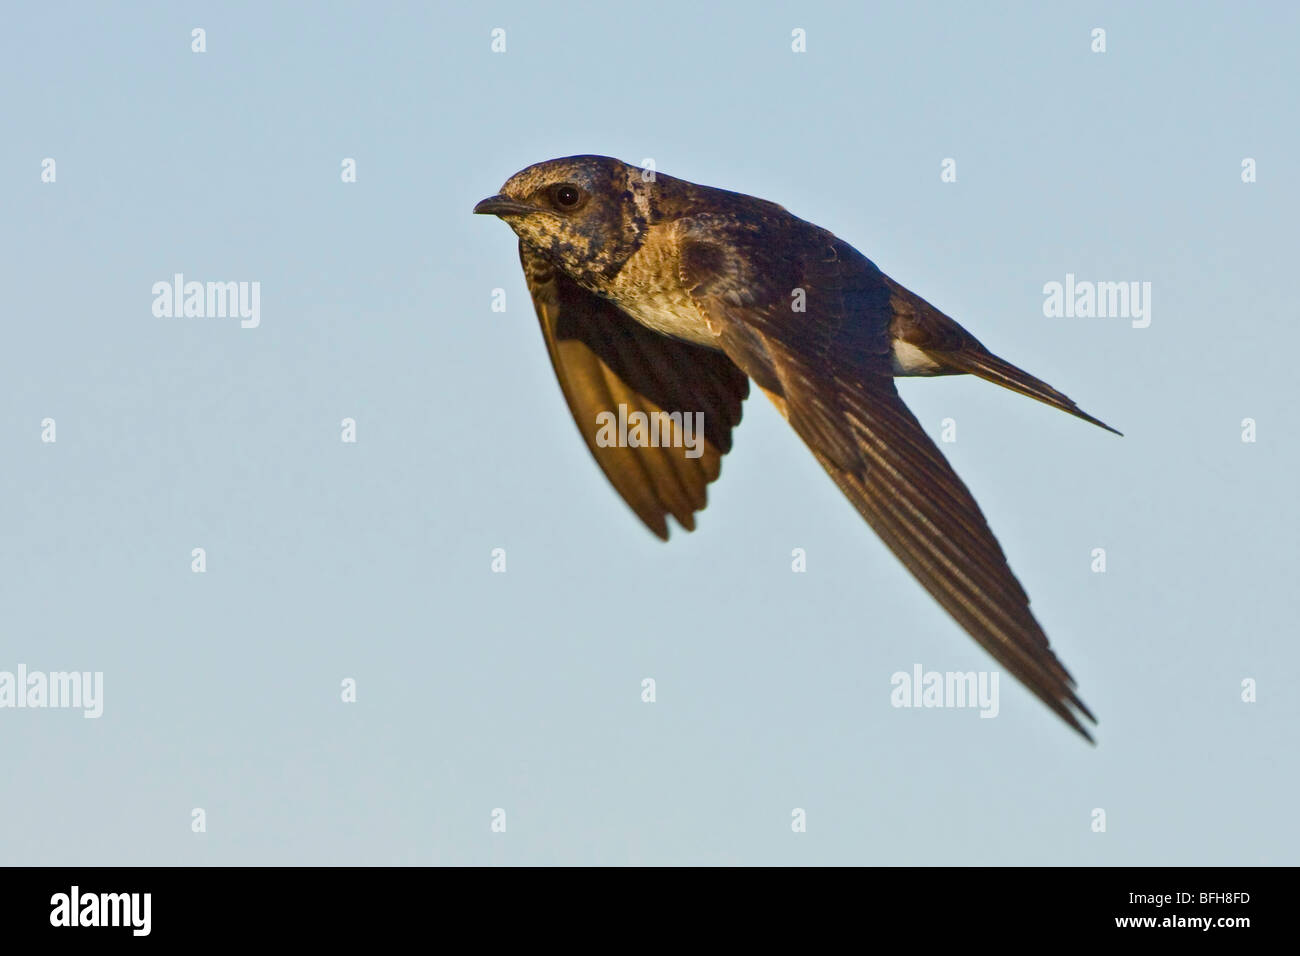 Purple Martin (Progne subis) in flight in Victoria, BC, Canada. - Stock Image